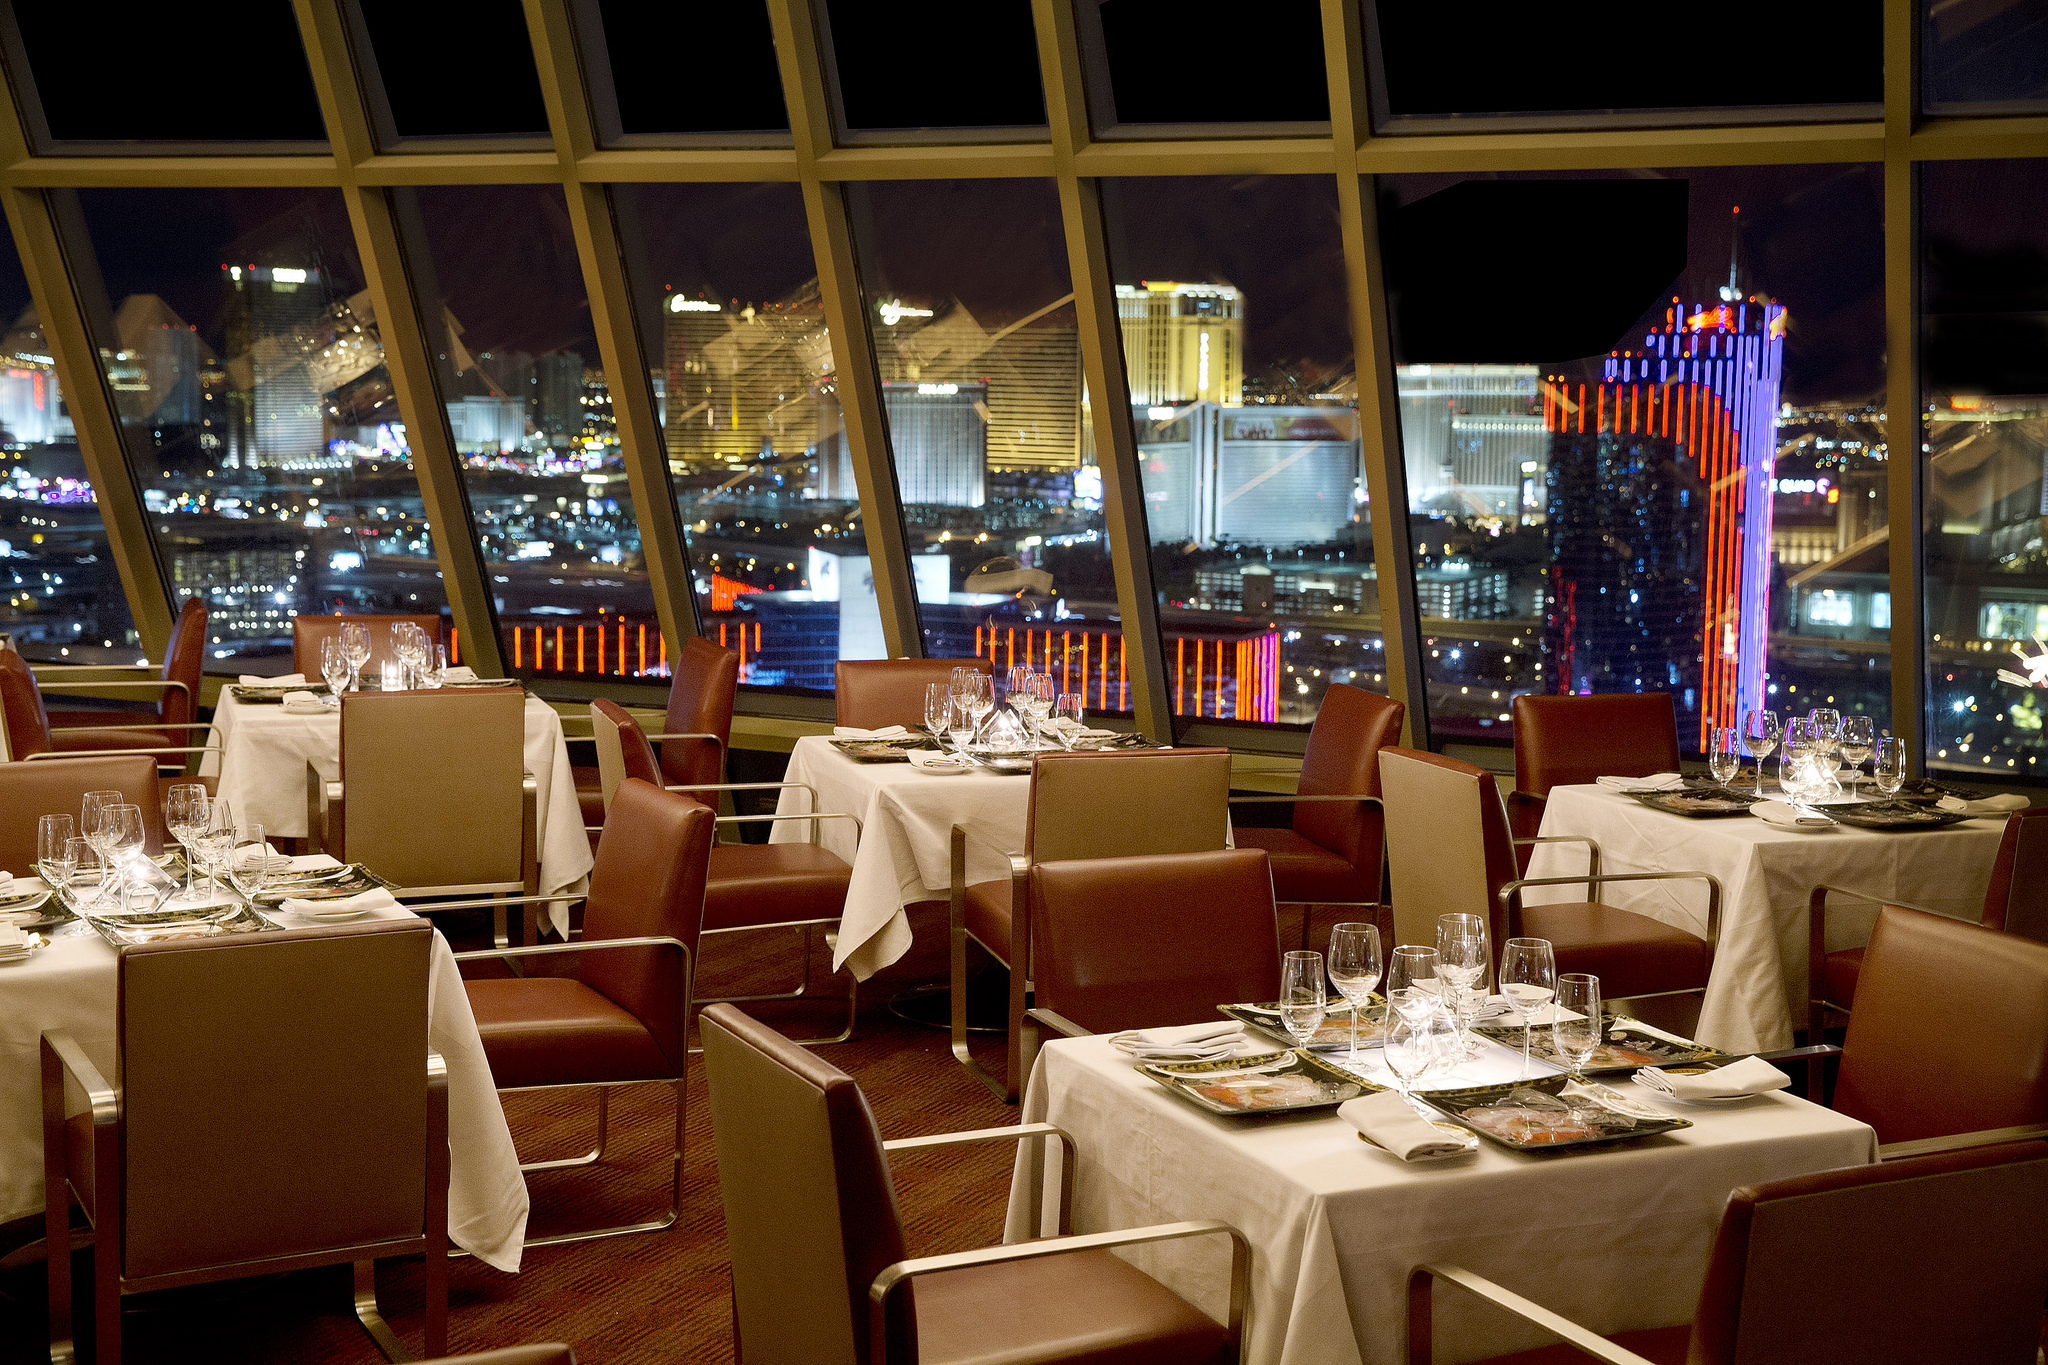 Impress your date at these romantic Vegas restaurants  Las Vegas Blogs